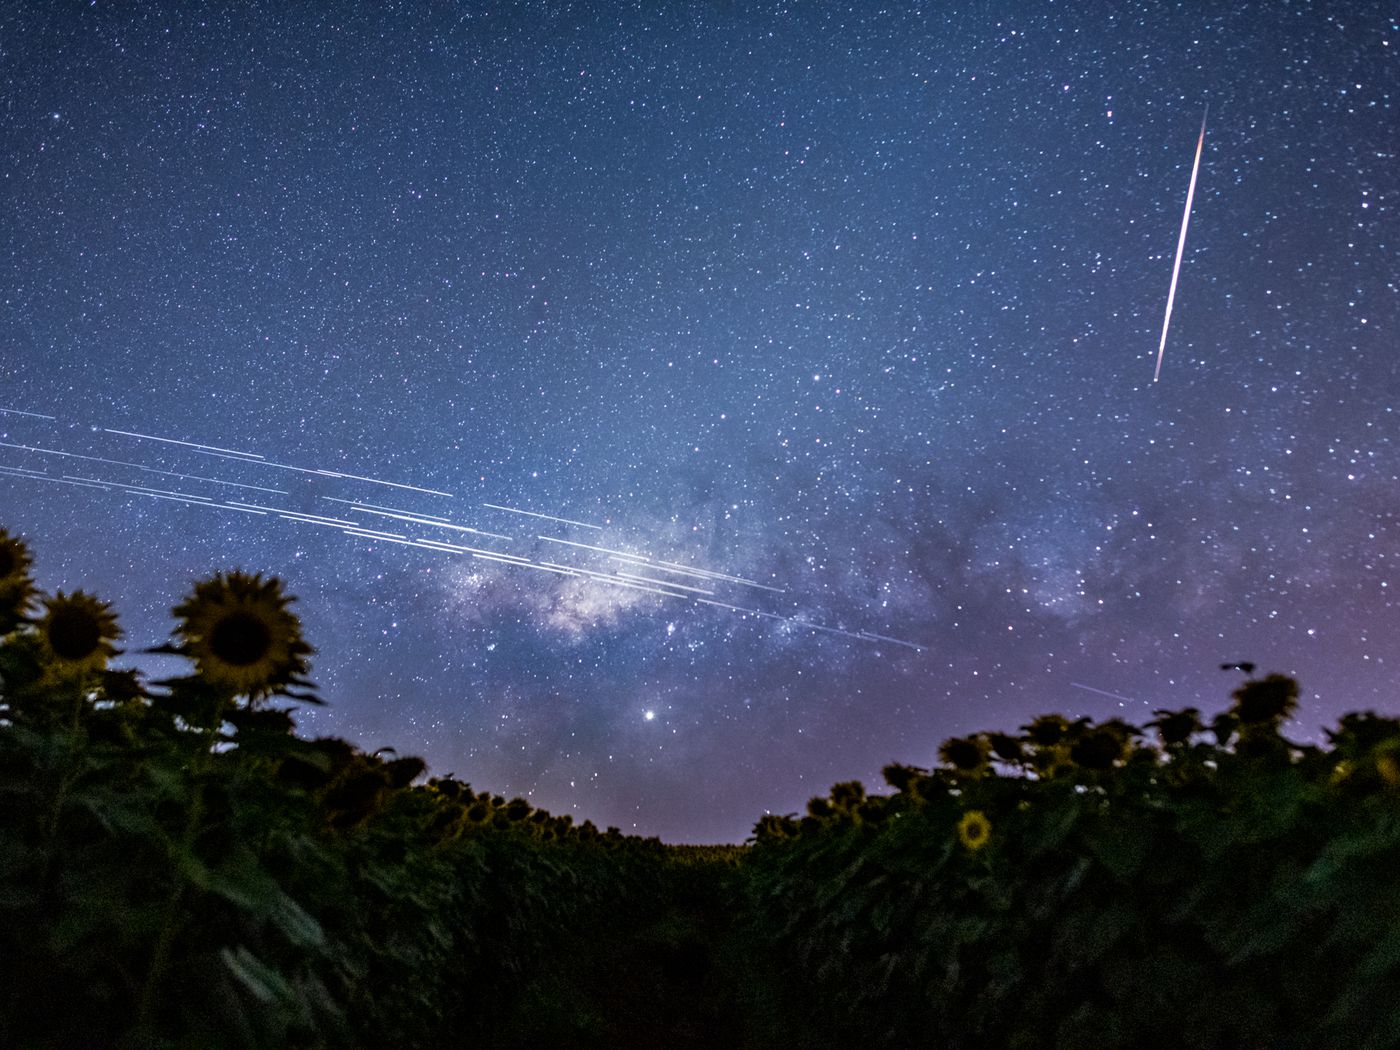 Elon Musk's Starlink satellites are interfering with astronomy. It's just  the beginning. - Vox